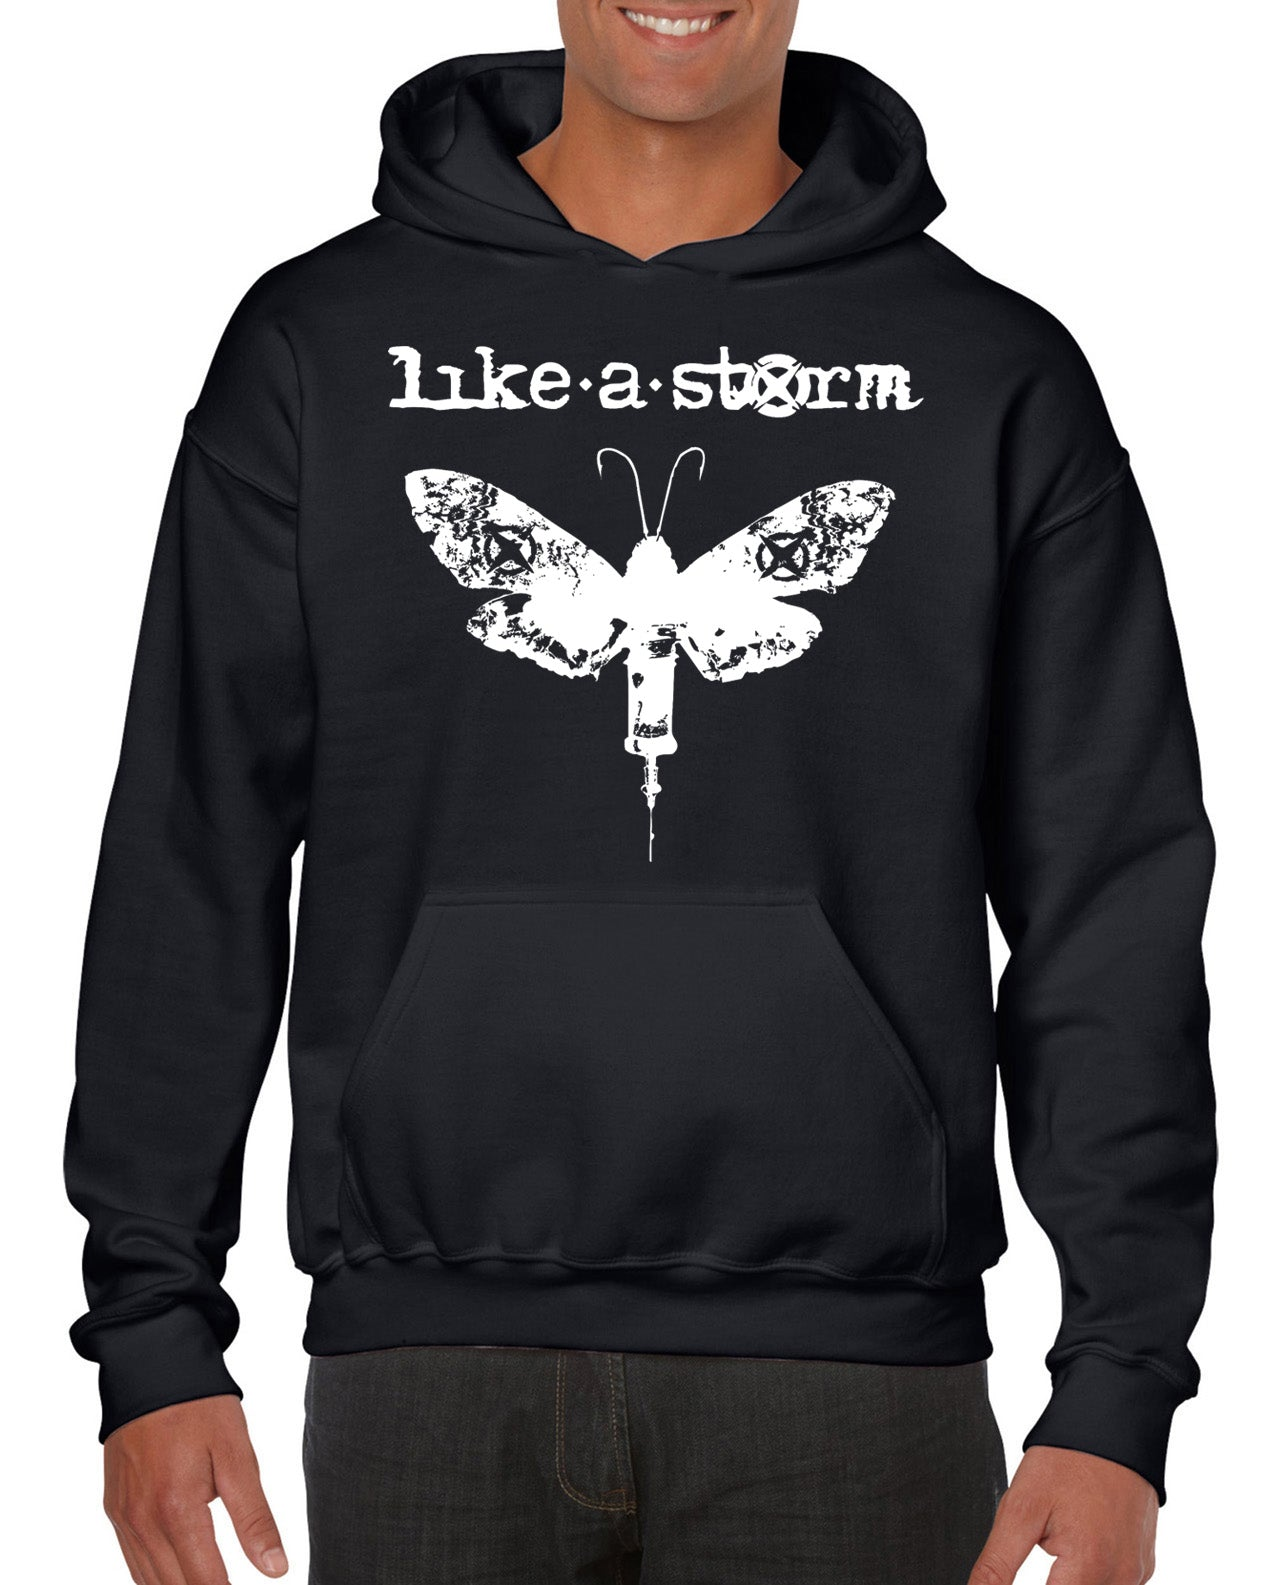 Classic Moth Pullover Hoodie - FREE SHIPPING!